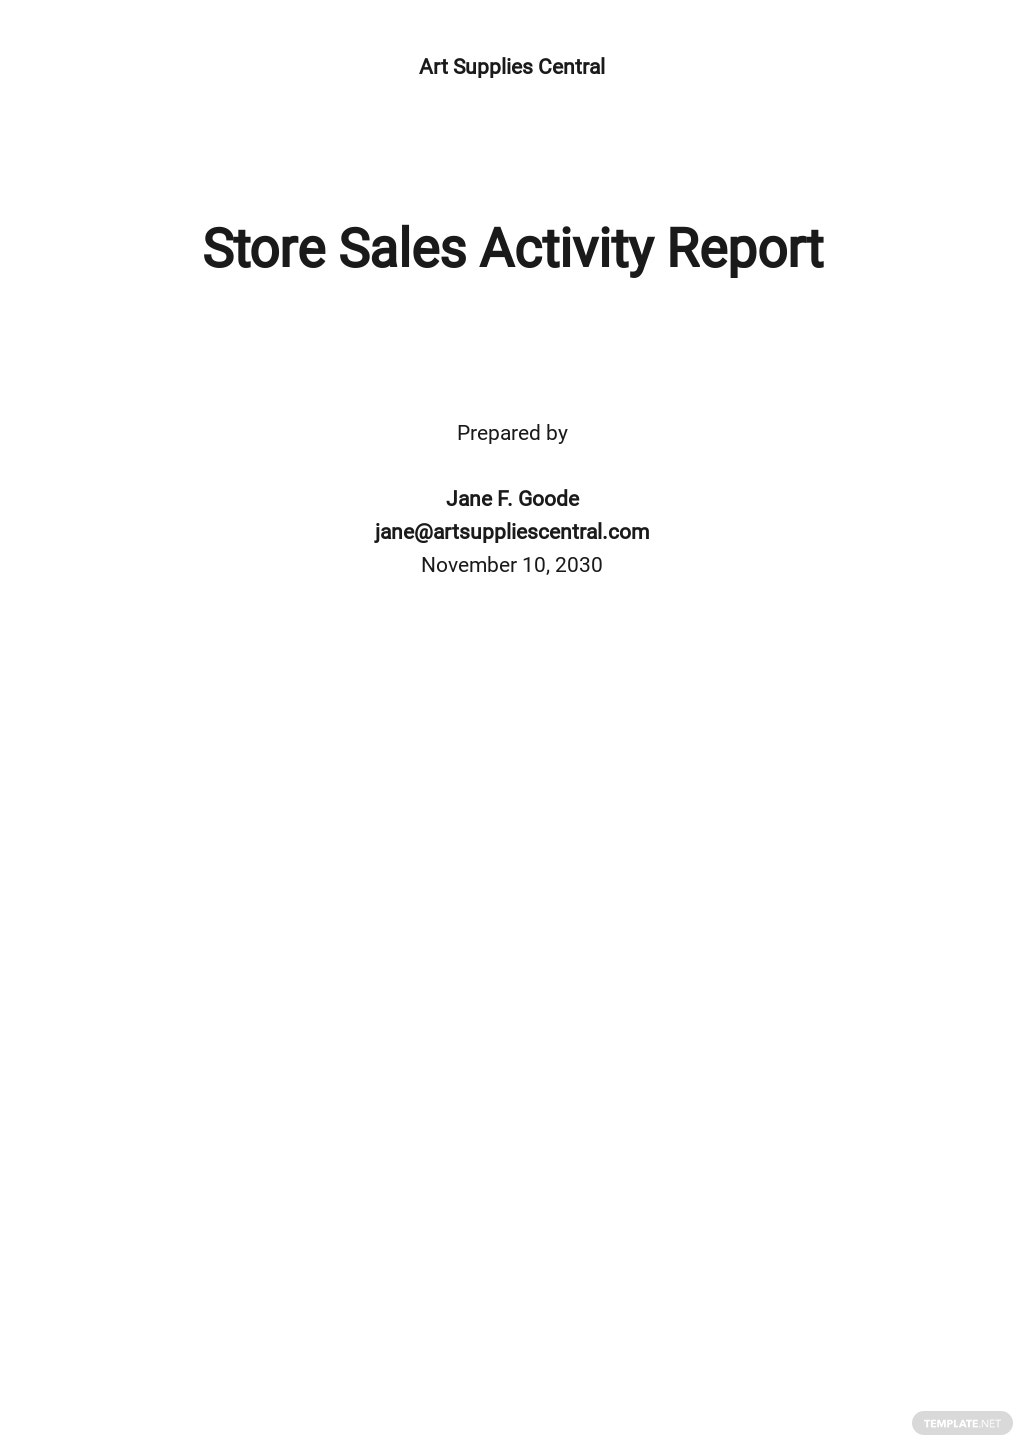 Free Sales Activity Report Sample.jpe